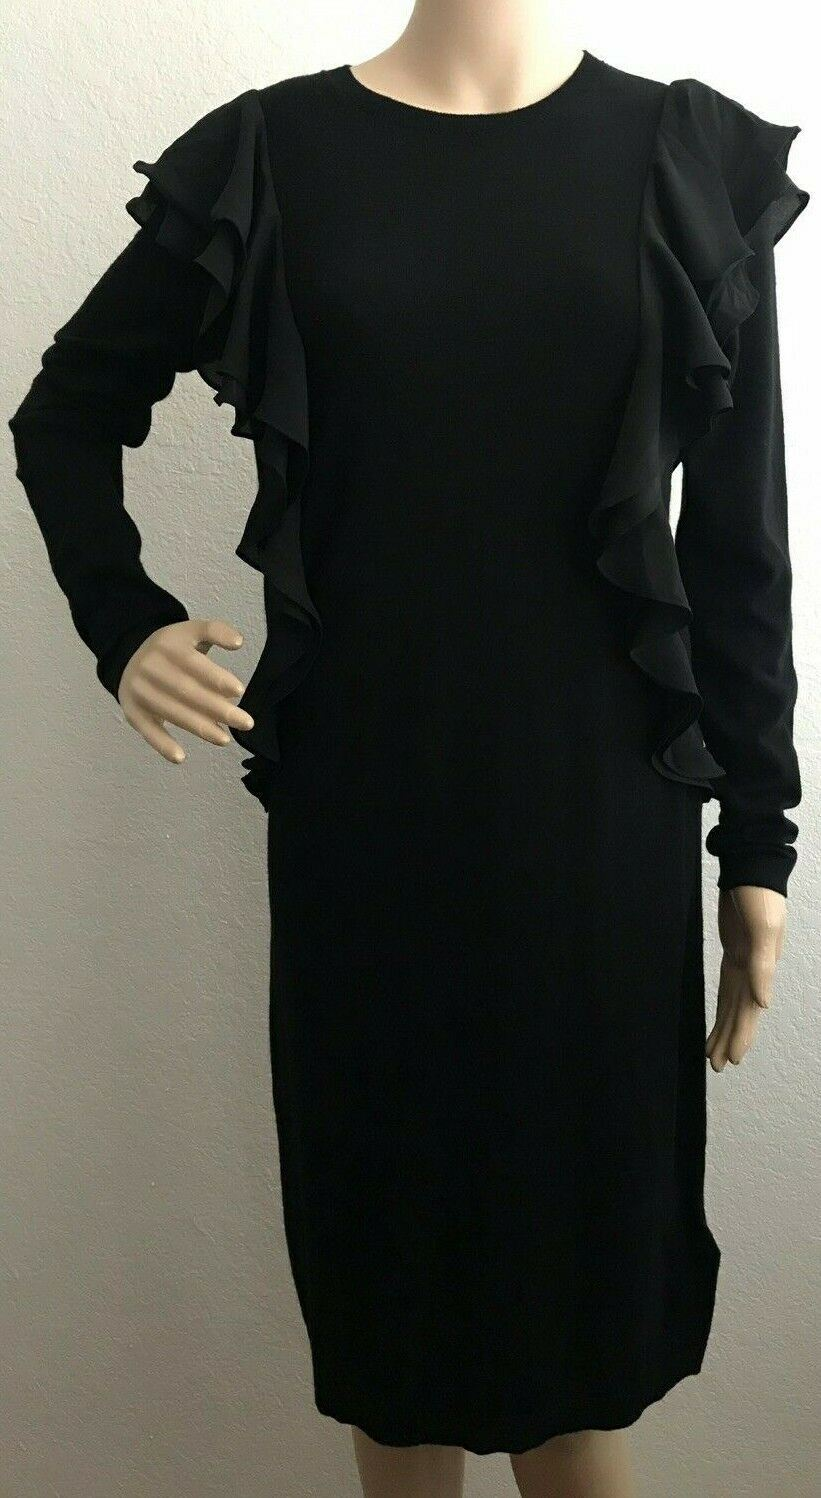 01b8d40ce79 NWT Polo Ralph Lauren Women s Black Ruffled Cotton Sweater Dress Size ...